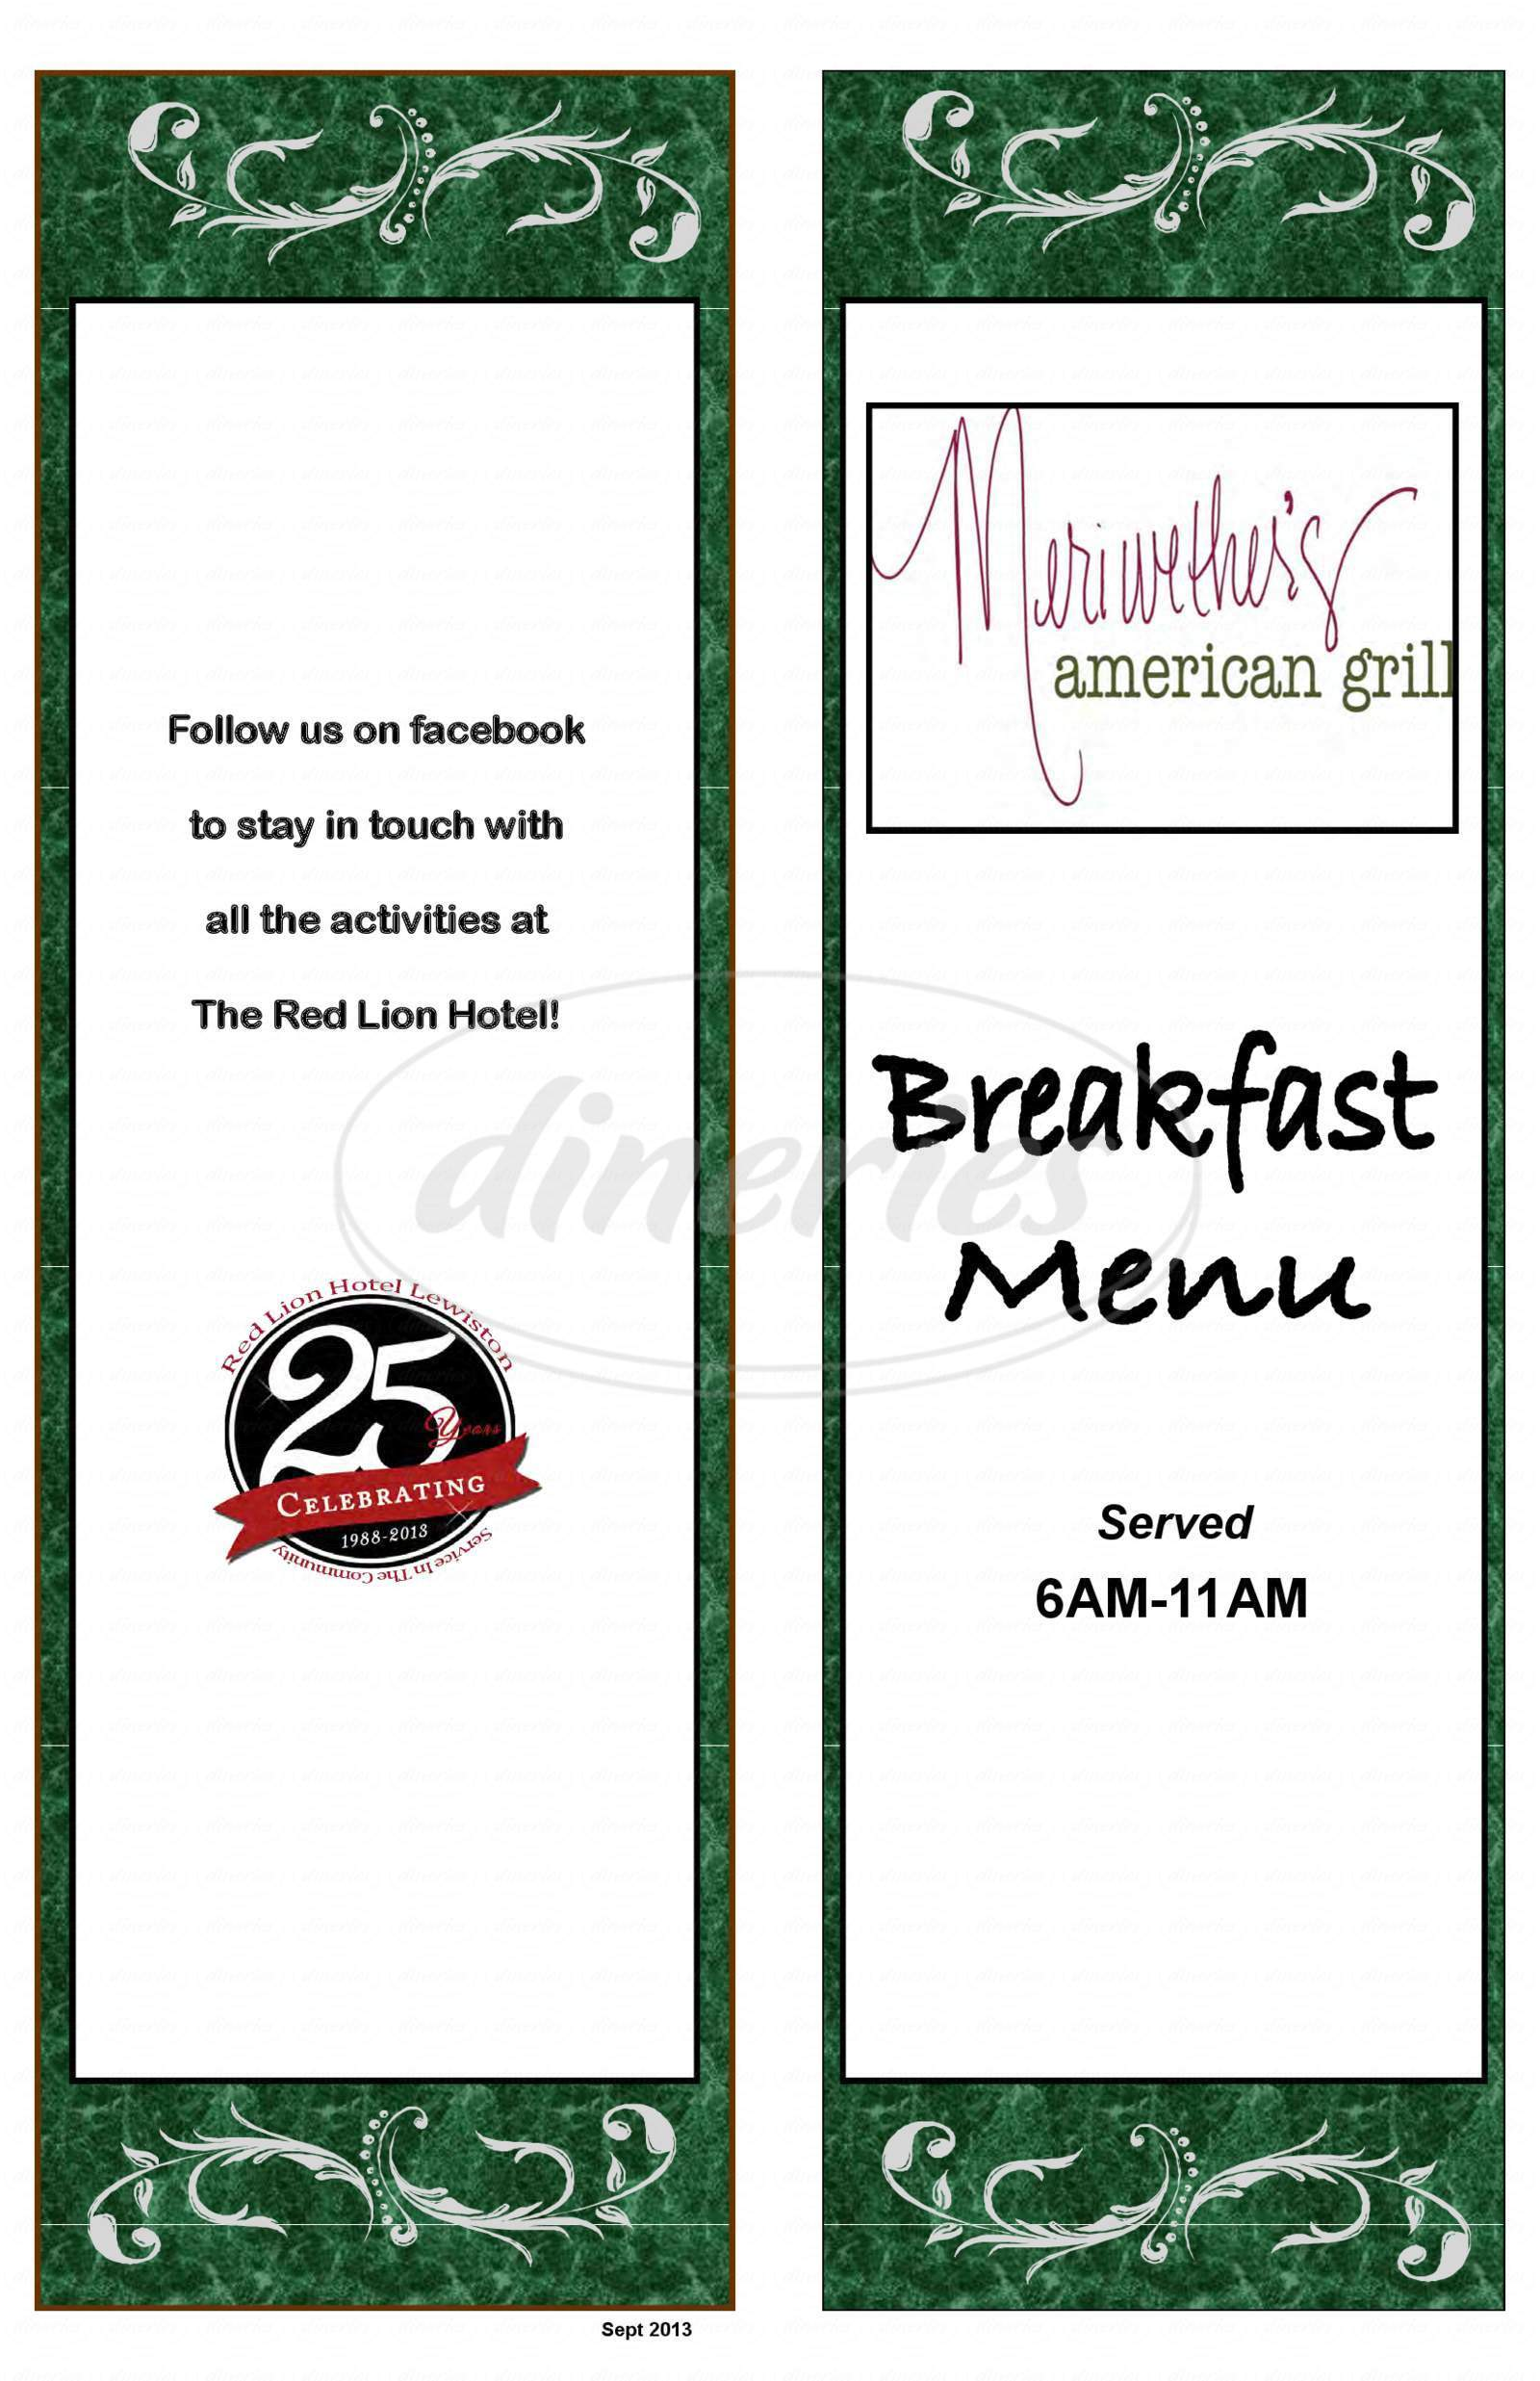 menu for Meriwether's Bar & Grill